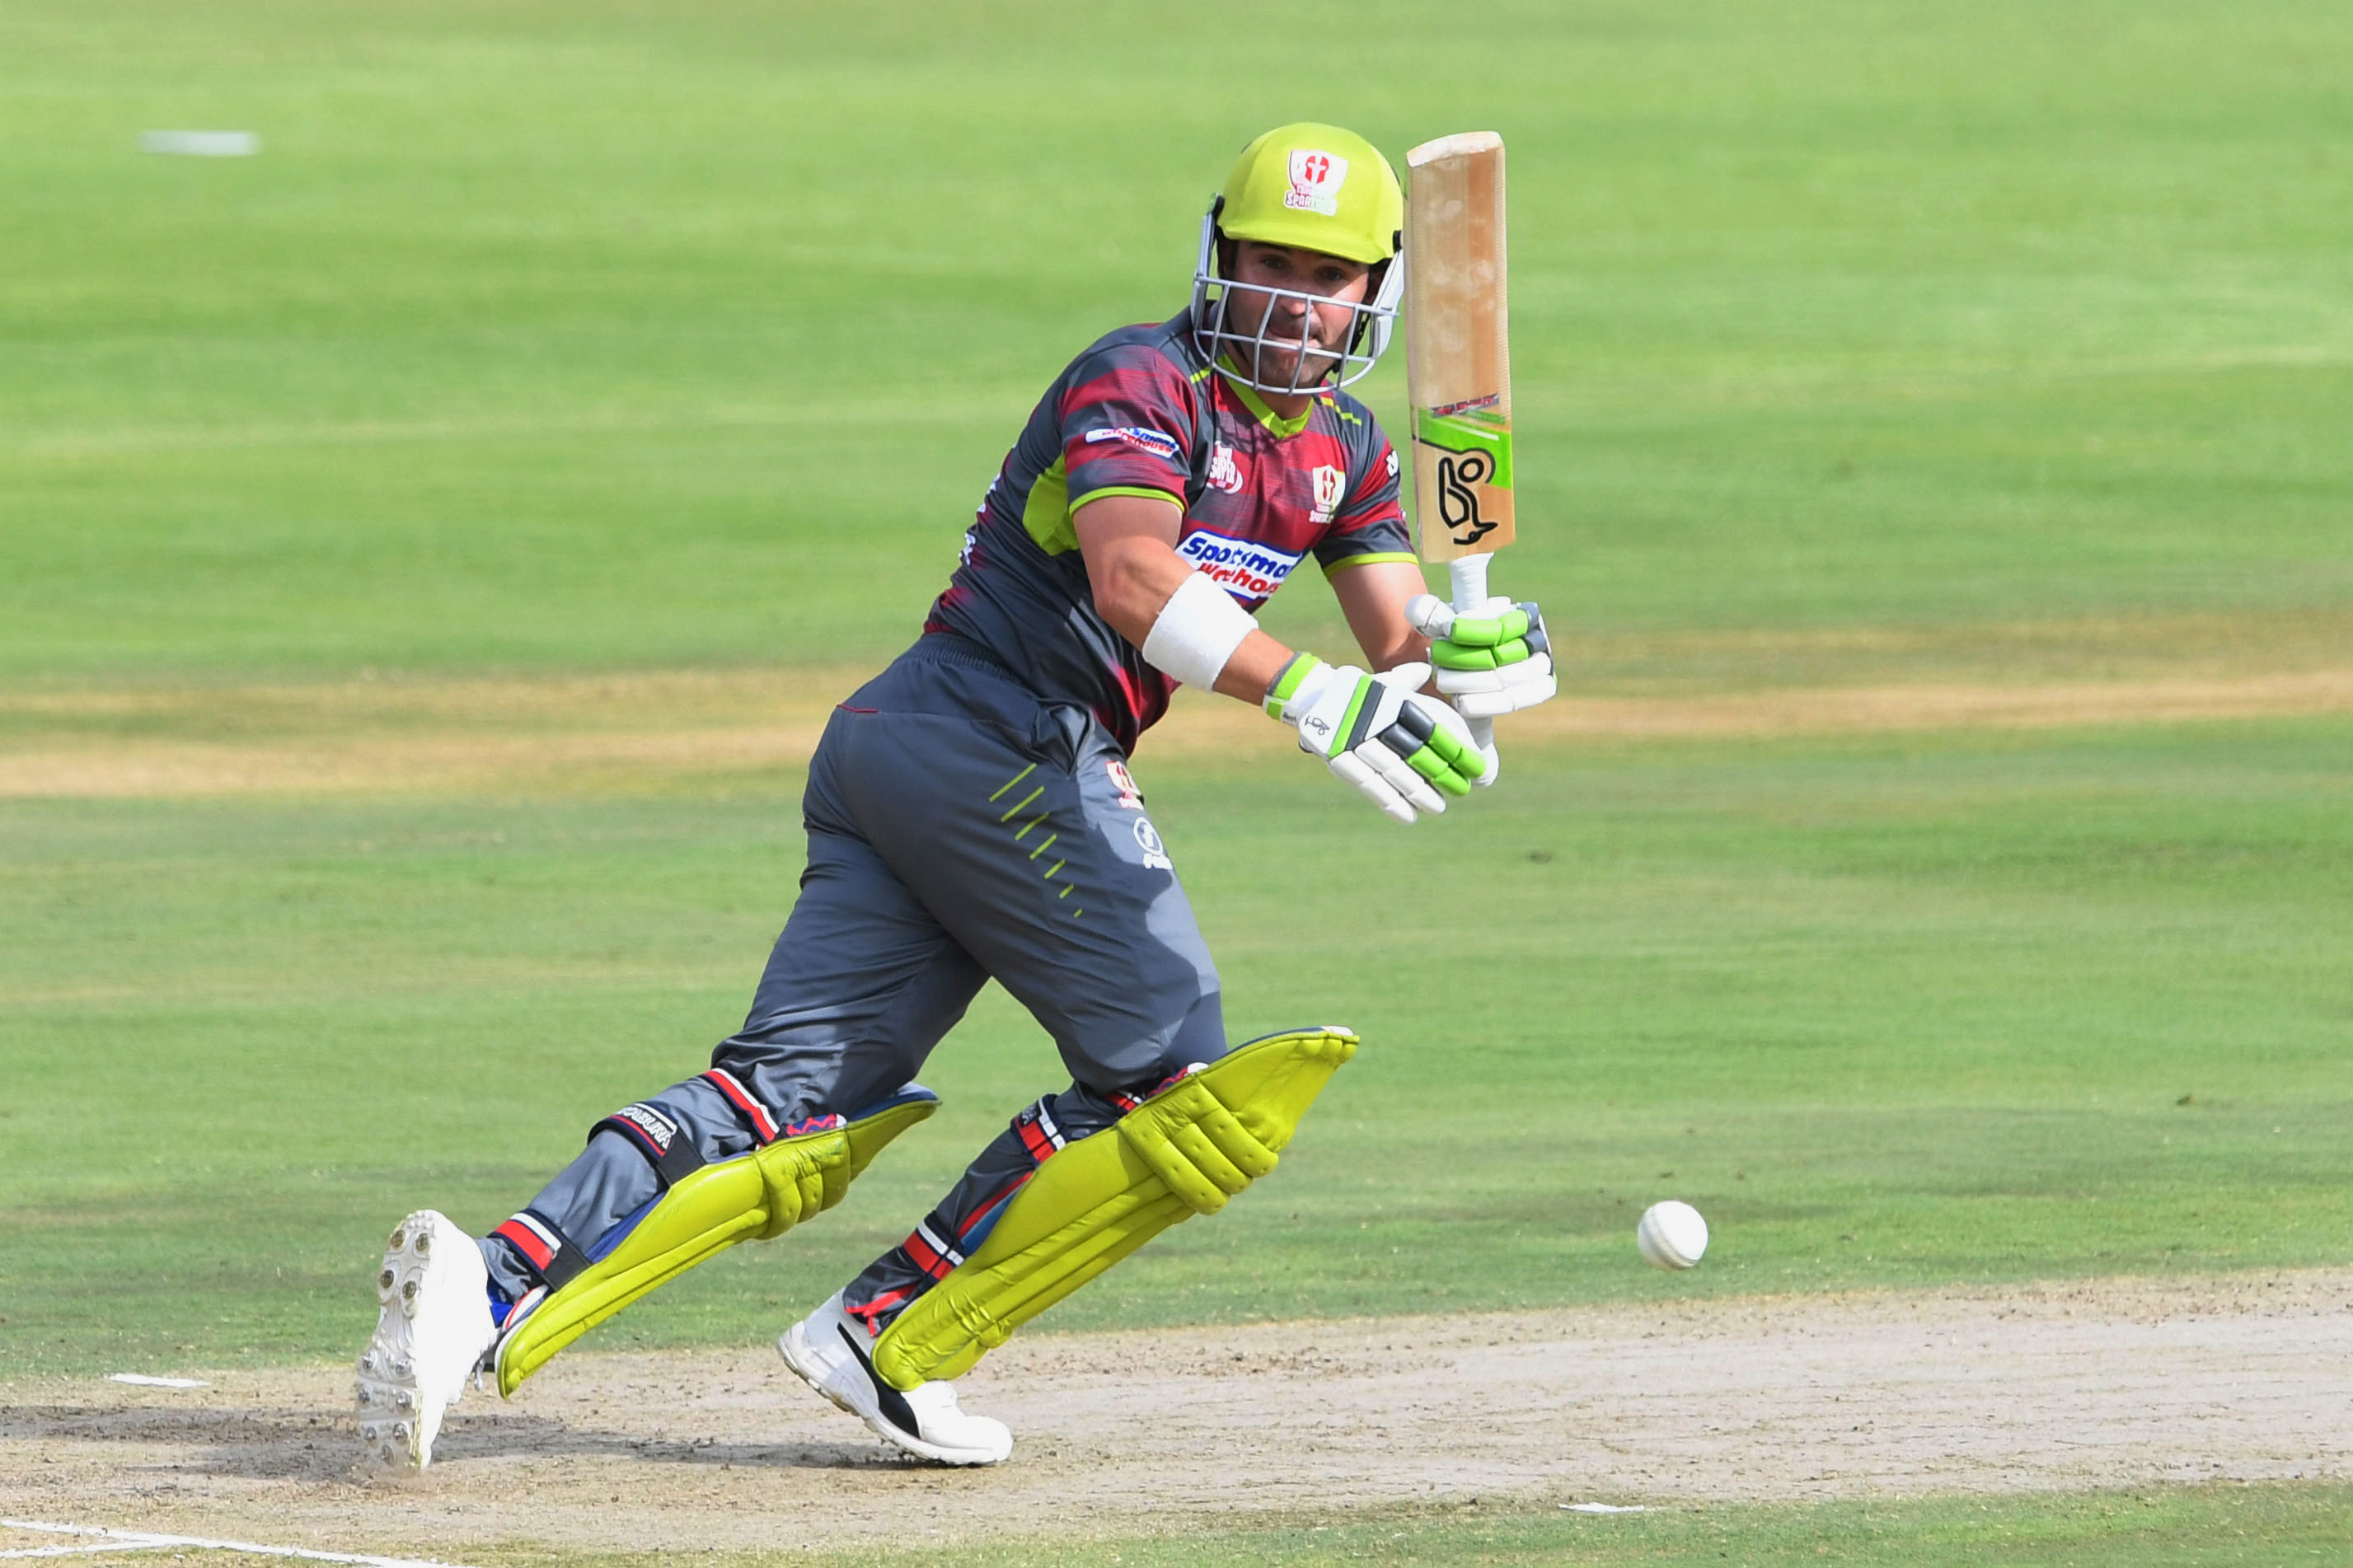 5 December 2018: Dean Elgar of the Tshwane Spartans in action during their Mzansi Super League match against Paarl Rocks at SuperSport Park in Tshwane, South Africa. (Photograph by Lee Warren/Gallo Images)